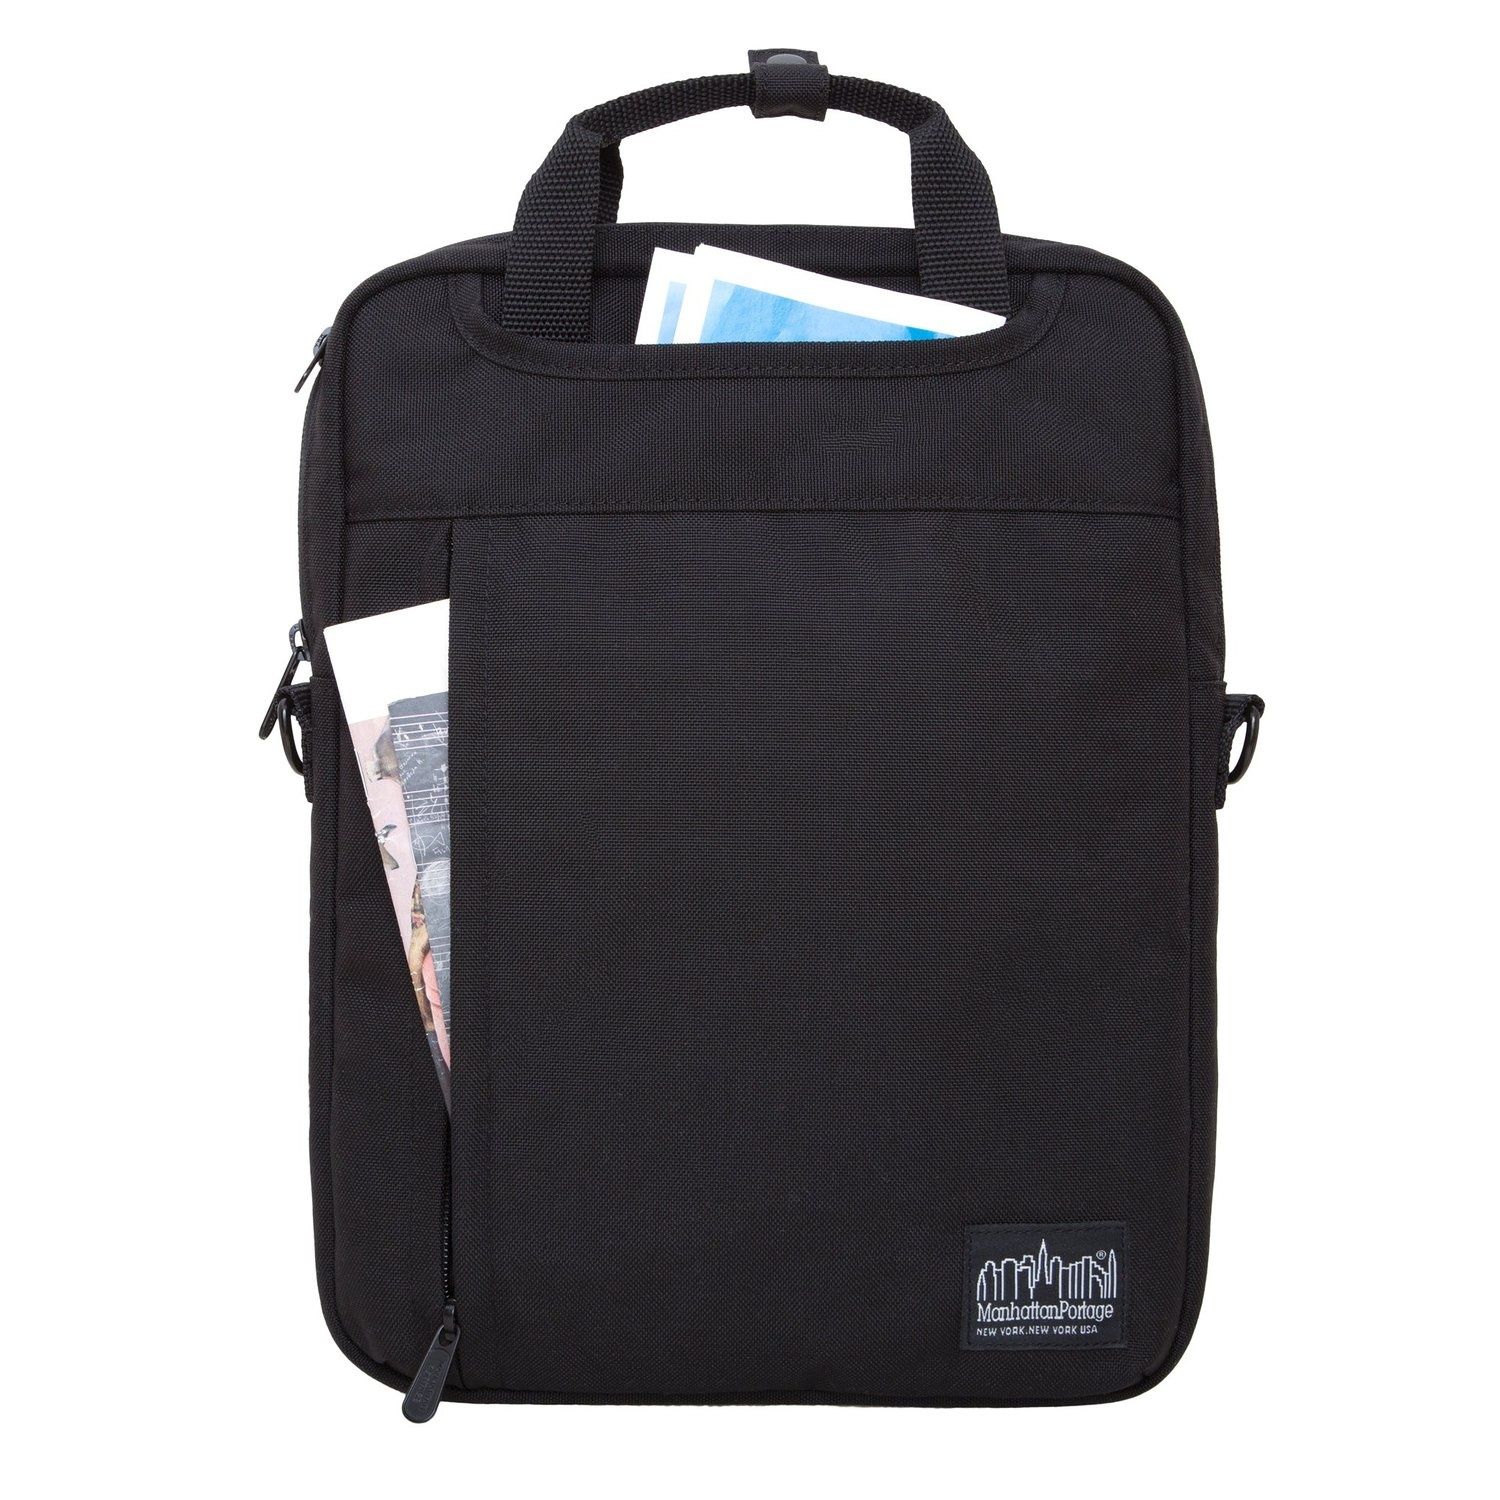 3cdc3b6ee354 Manhattan Portage Bags  Buy Online from Fishpond.co.nz